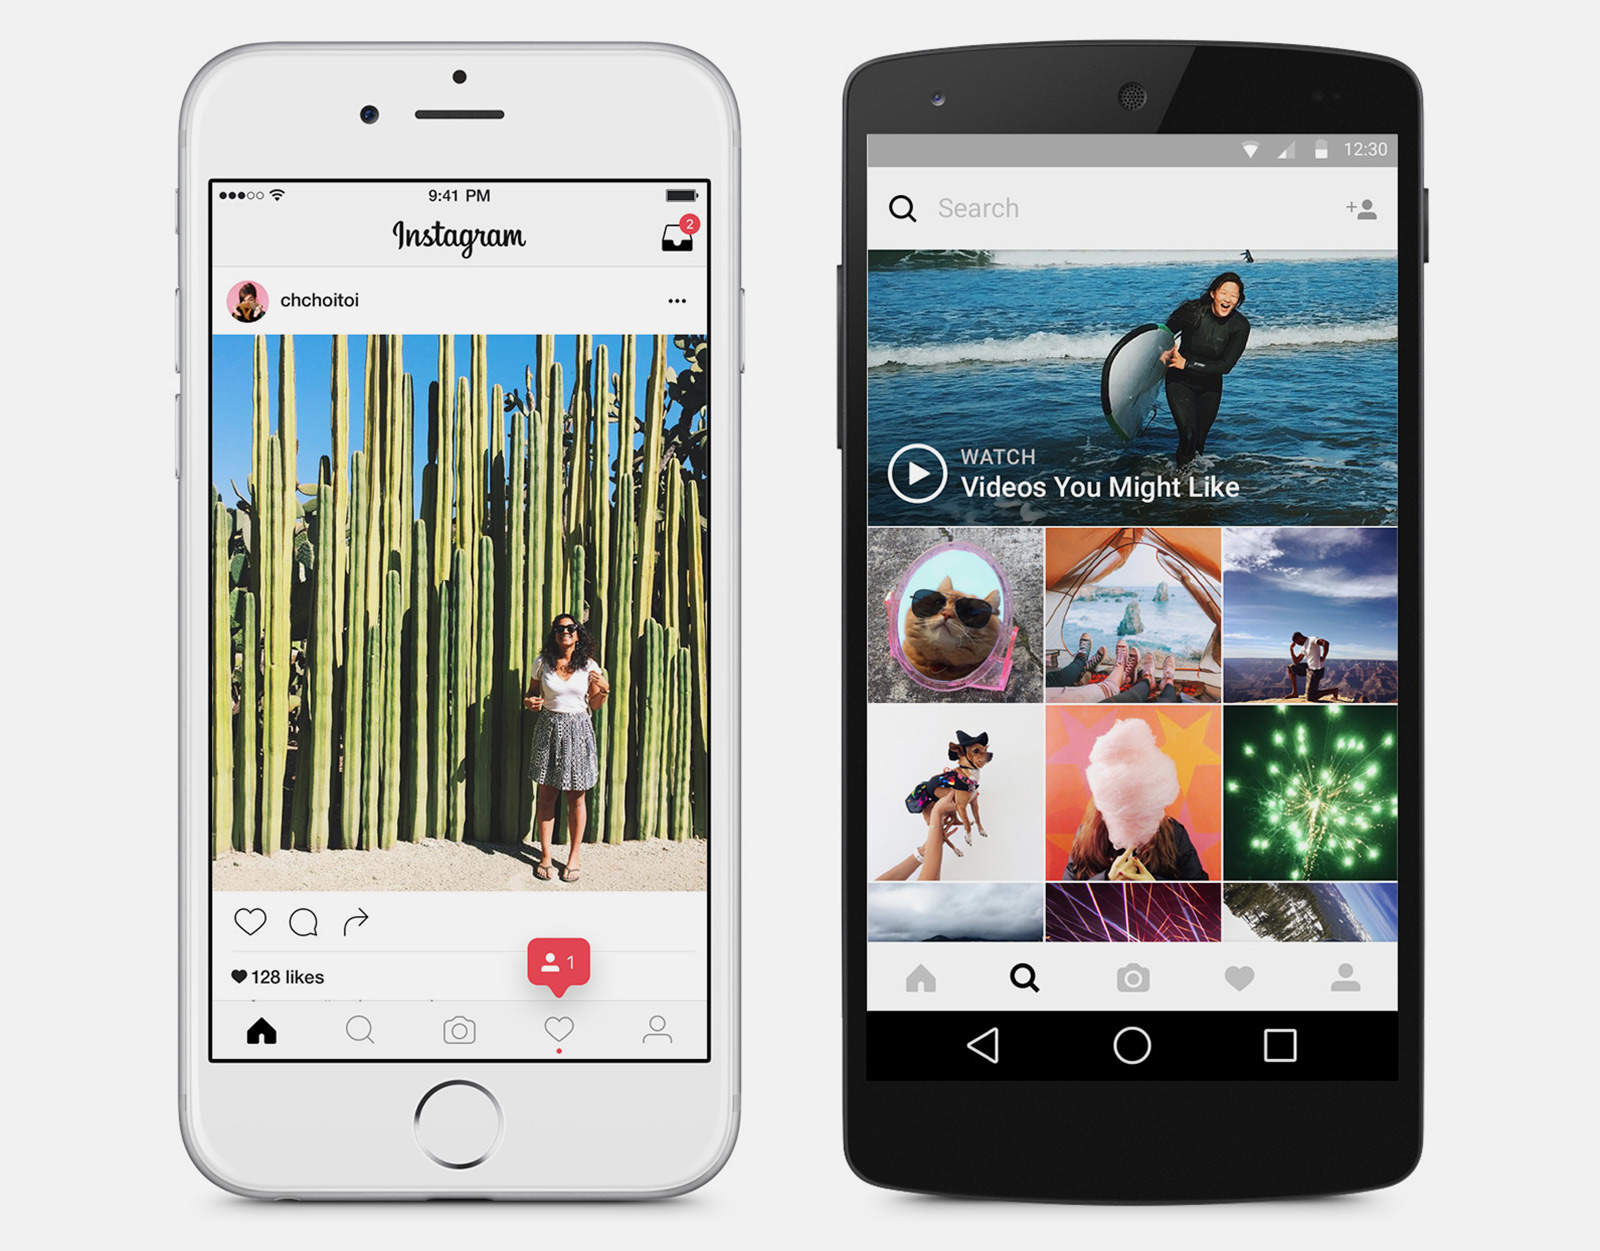 Instagram now has more than 600 million users.